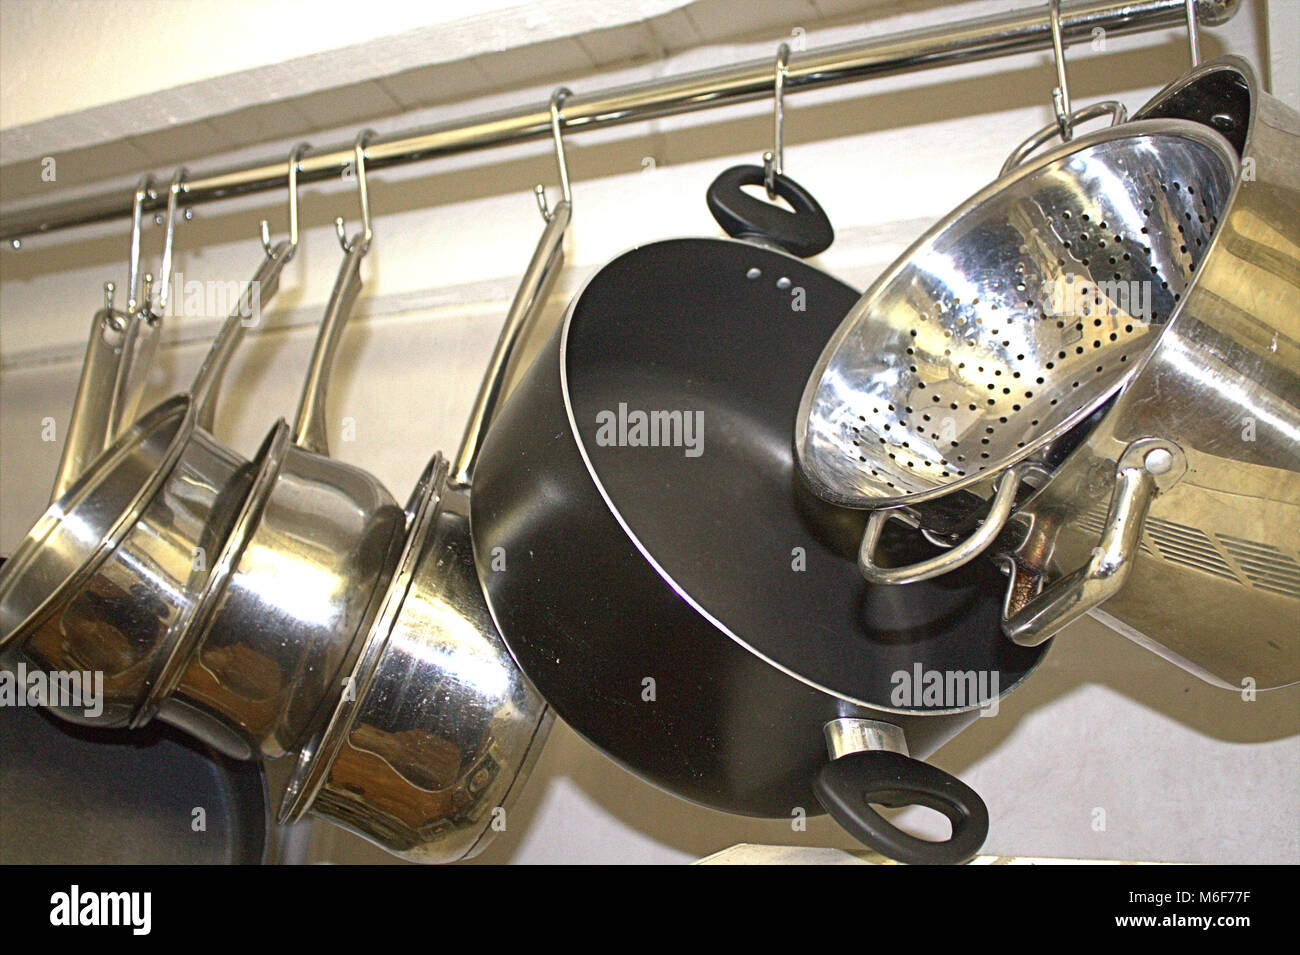 Pots and Pans hanging on a rail in a domestic kitchen - Stock Image